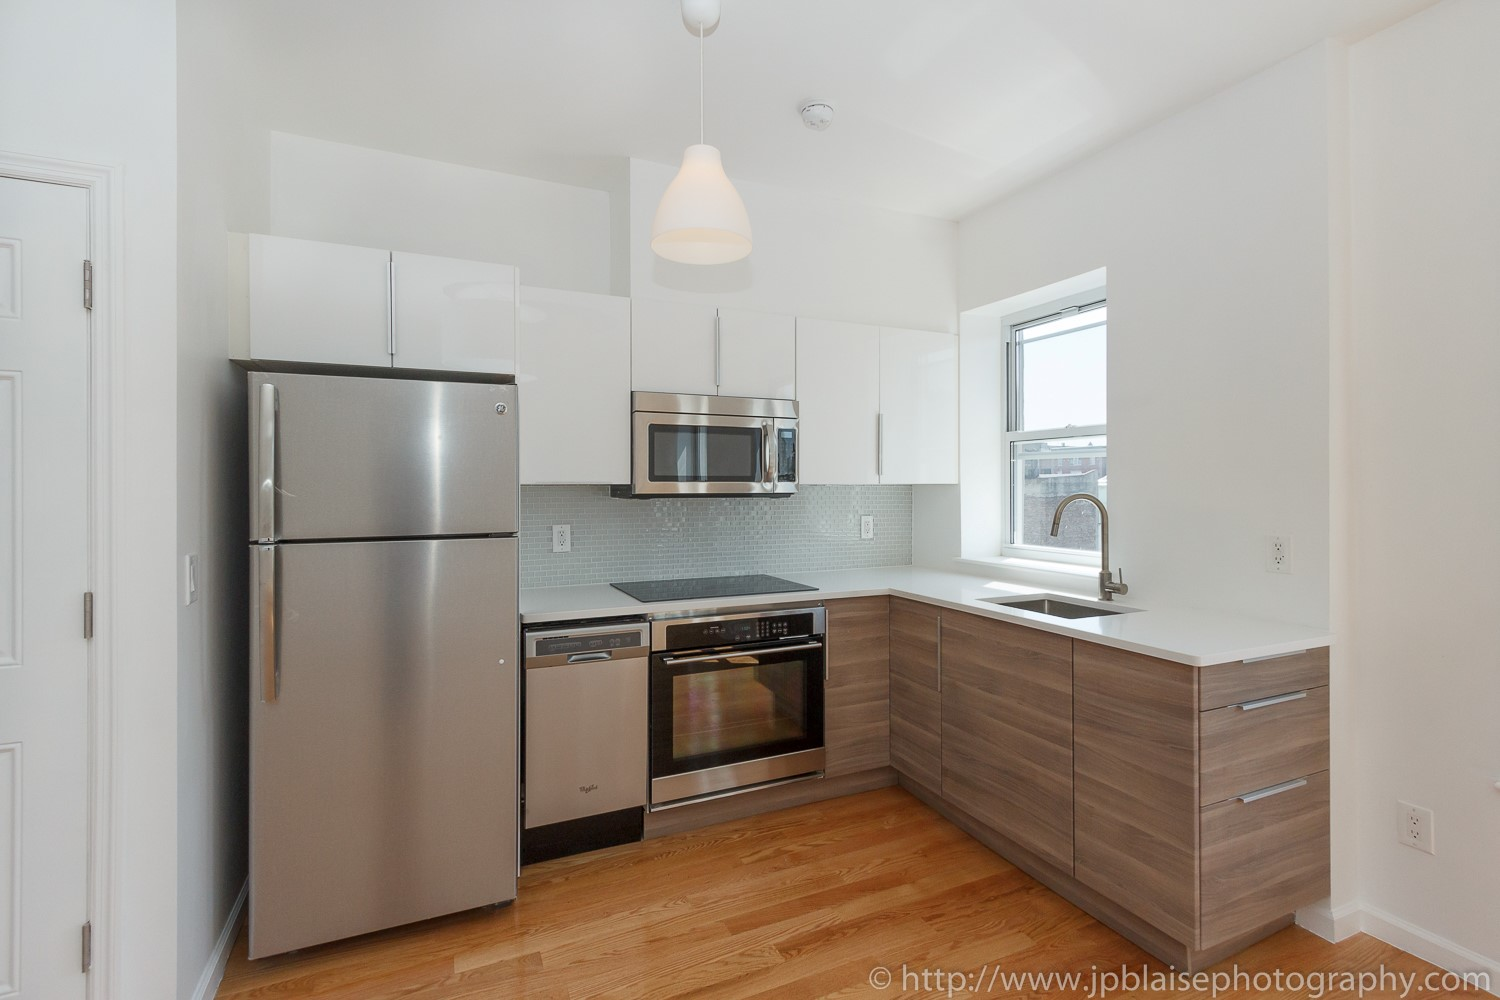 Kicthen picture Apartment photographer bedford stuyvesant apartment New York brooklyn photography